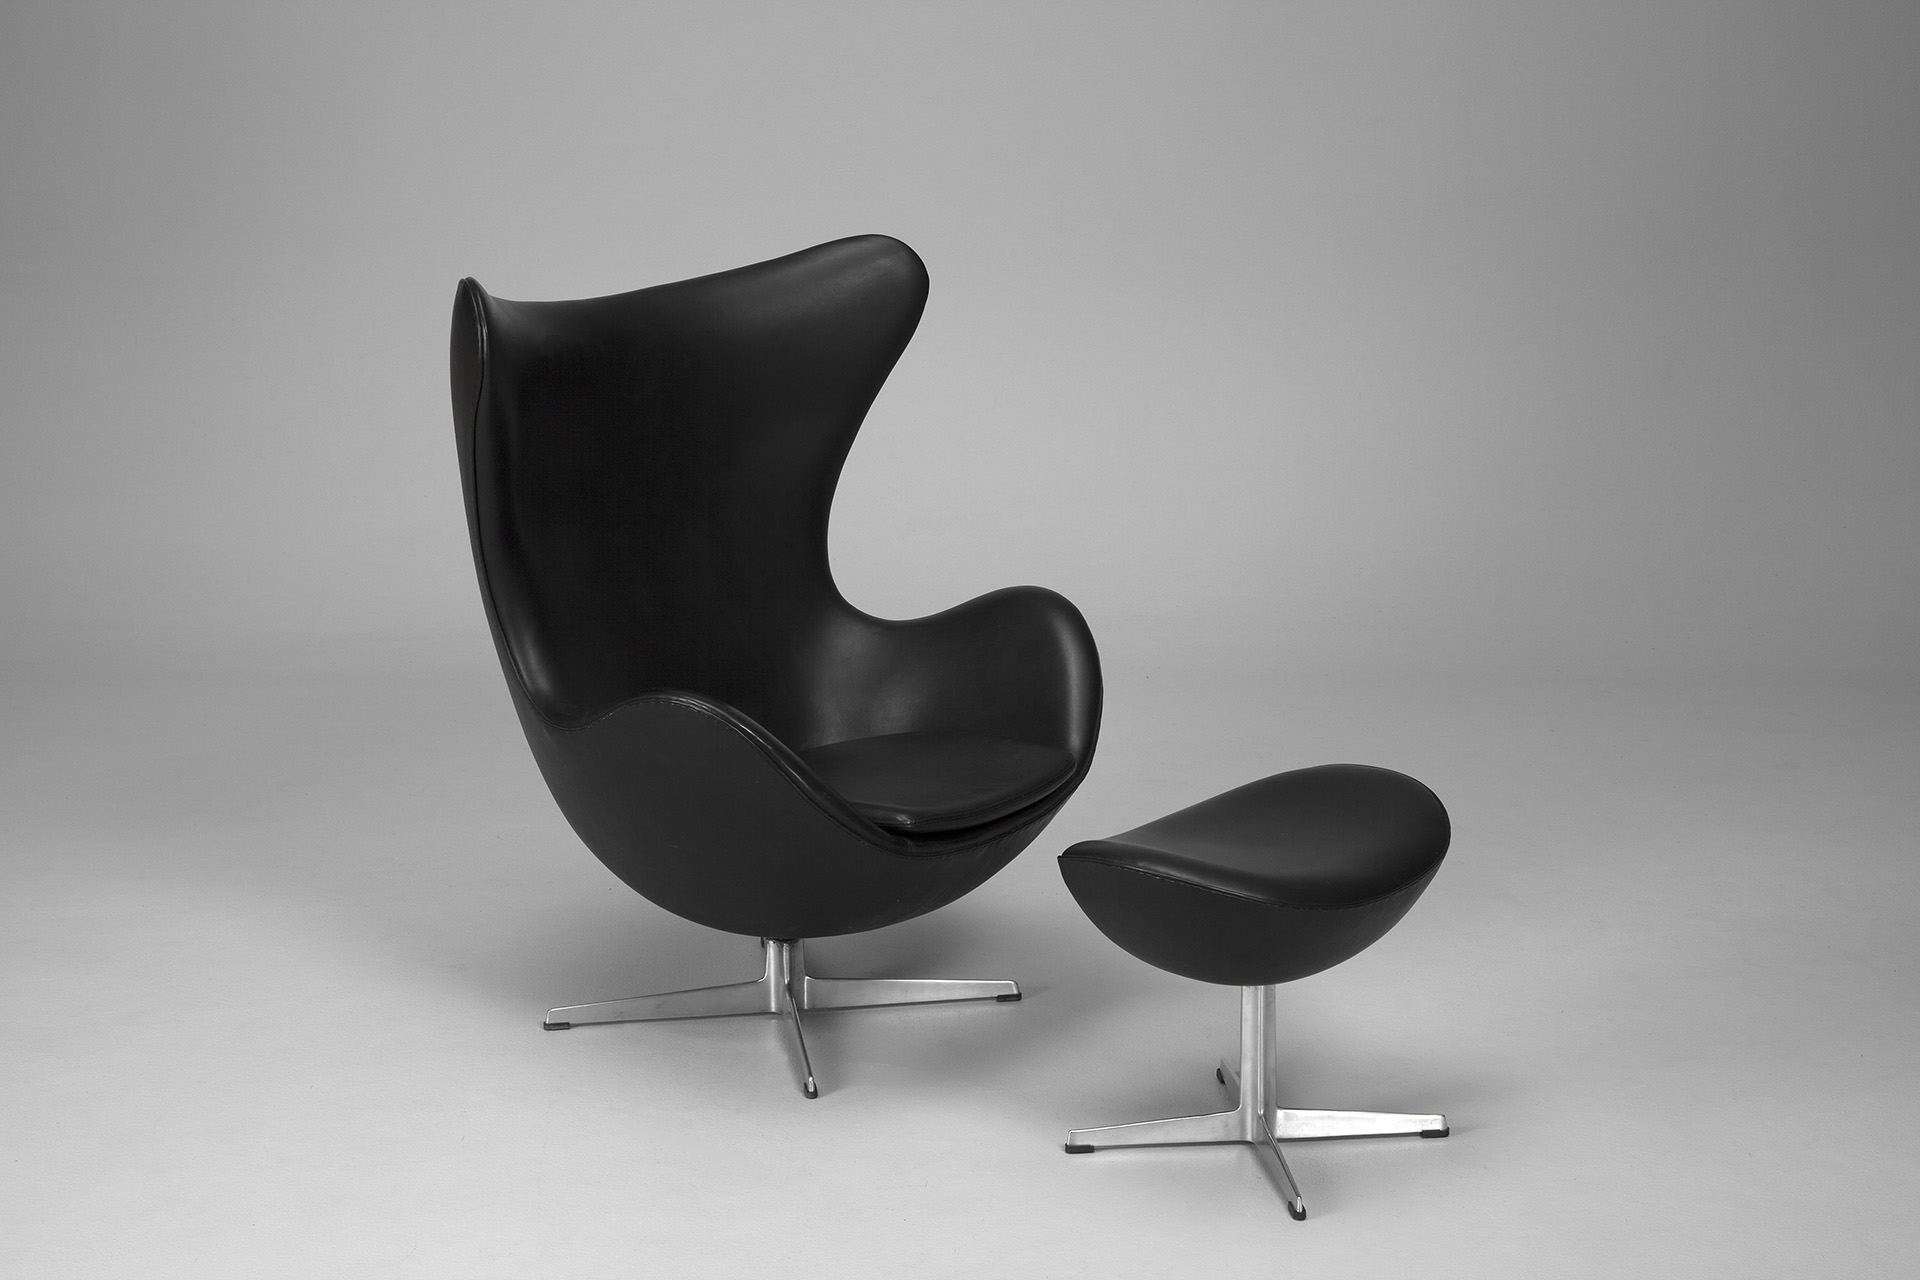 Swivel chairs with ottoman - Jacksons Egg Chair And Footstool Arne Jacobsen